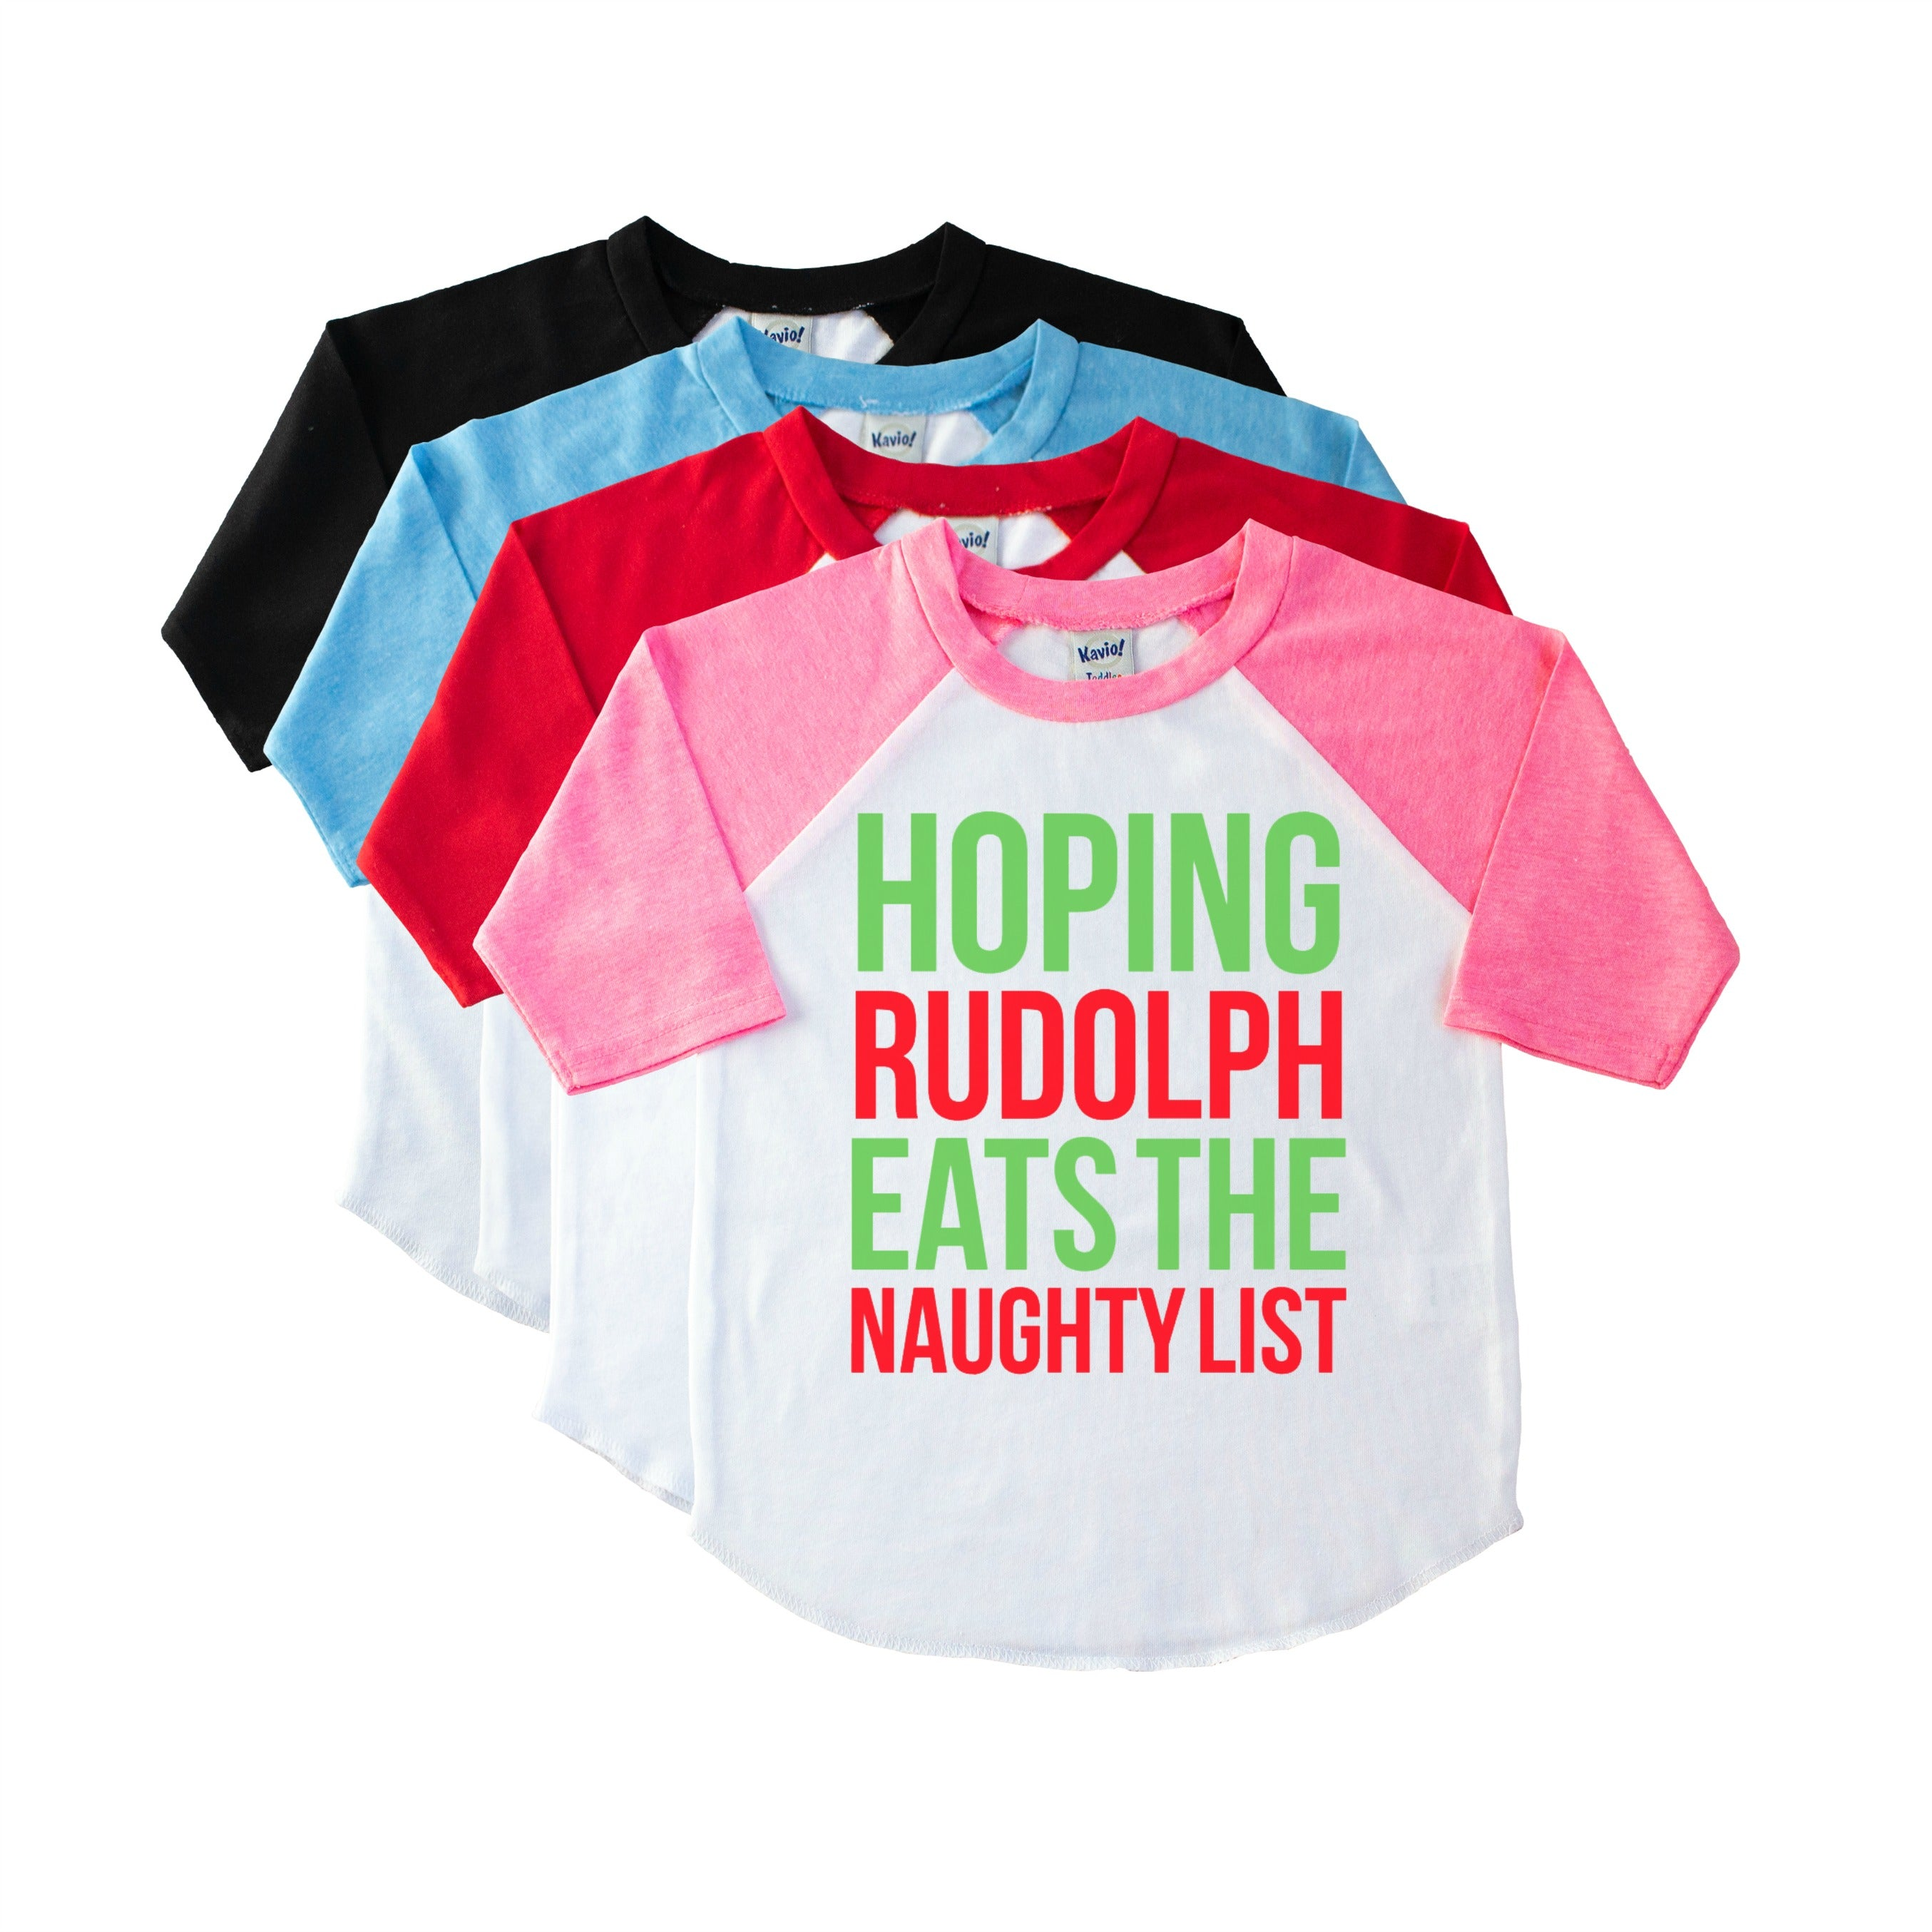 3669ea3f4f56 Hoping Rudolph Eats The Naughty List Funny Kids  Christmas Shirt ...